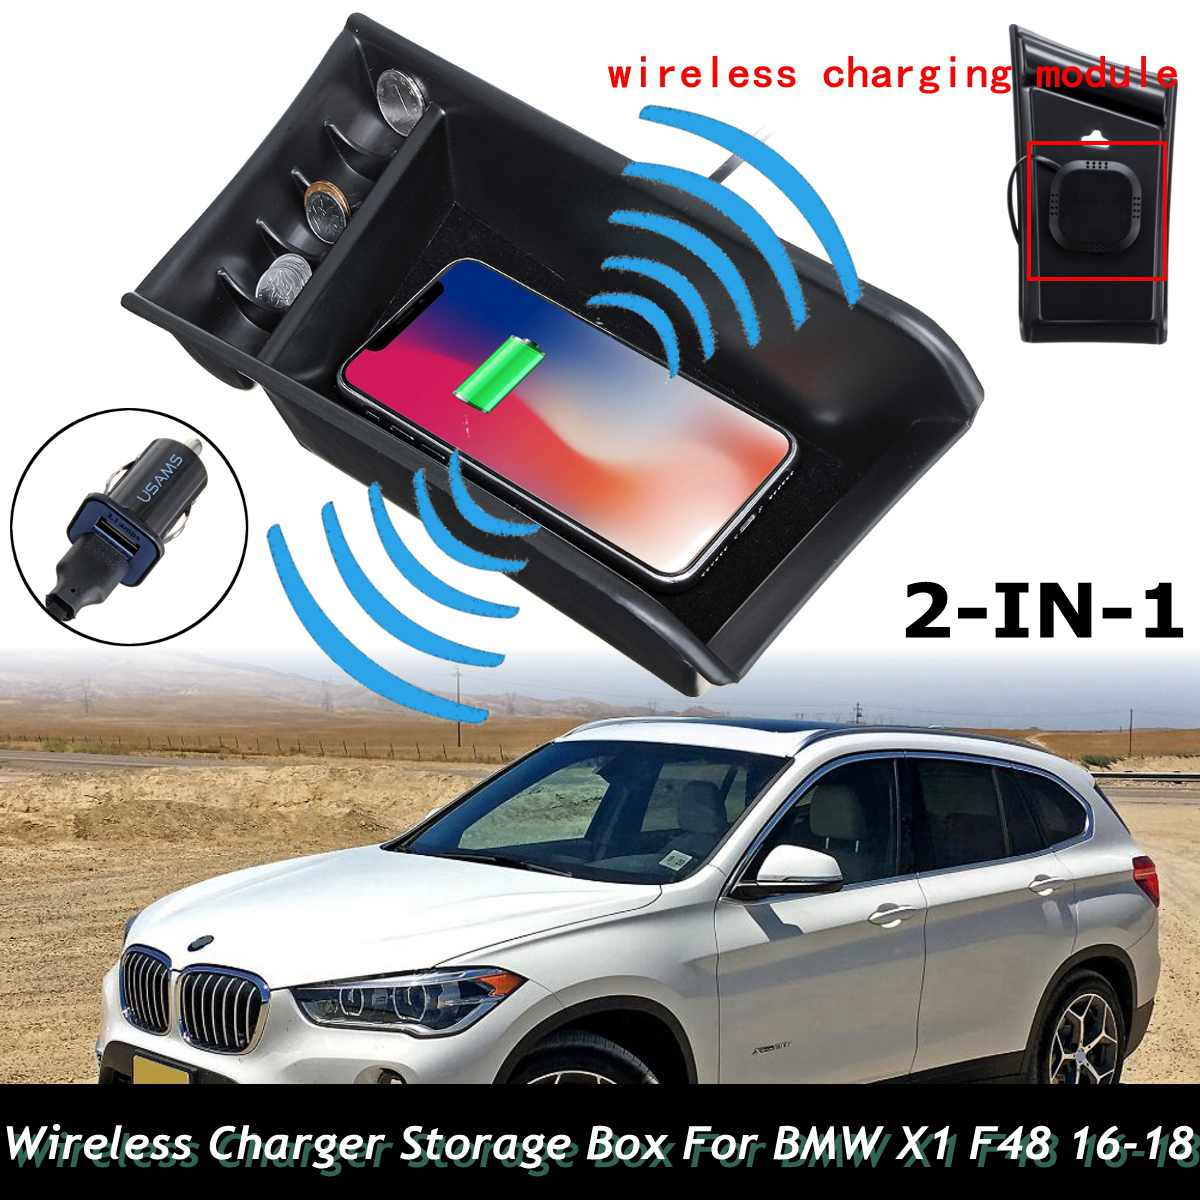 Phone Wireless Charging Central Armrest Storage Box For BMW X1 F48 20i 25i 25le 2016 2017 2018 LHD 12V DC Wireless Charging Tool